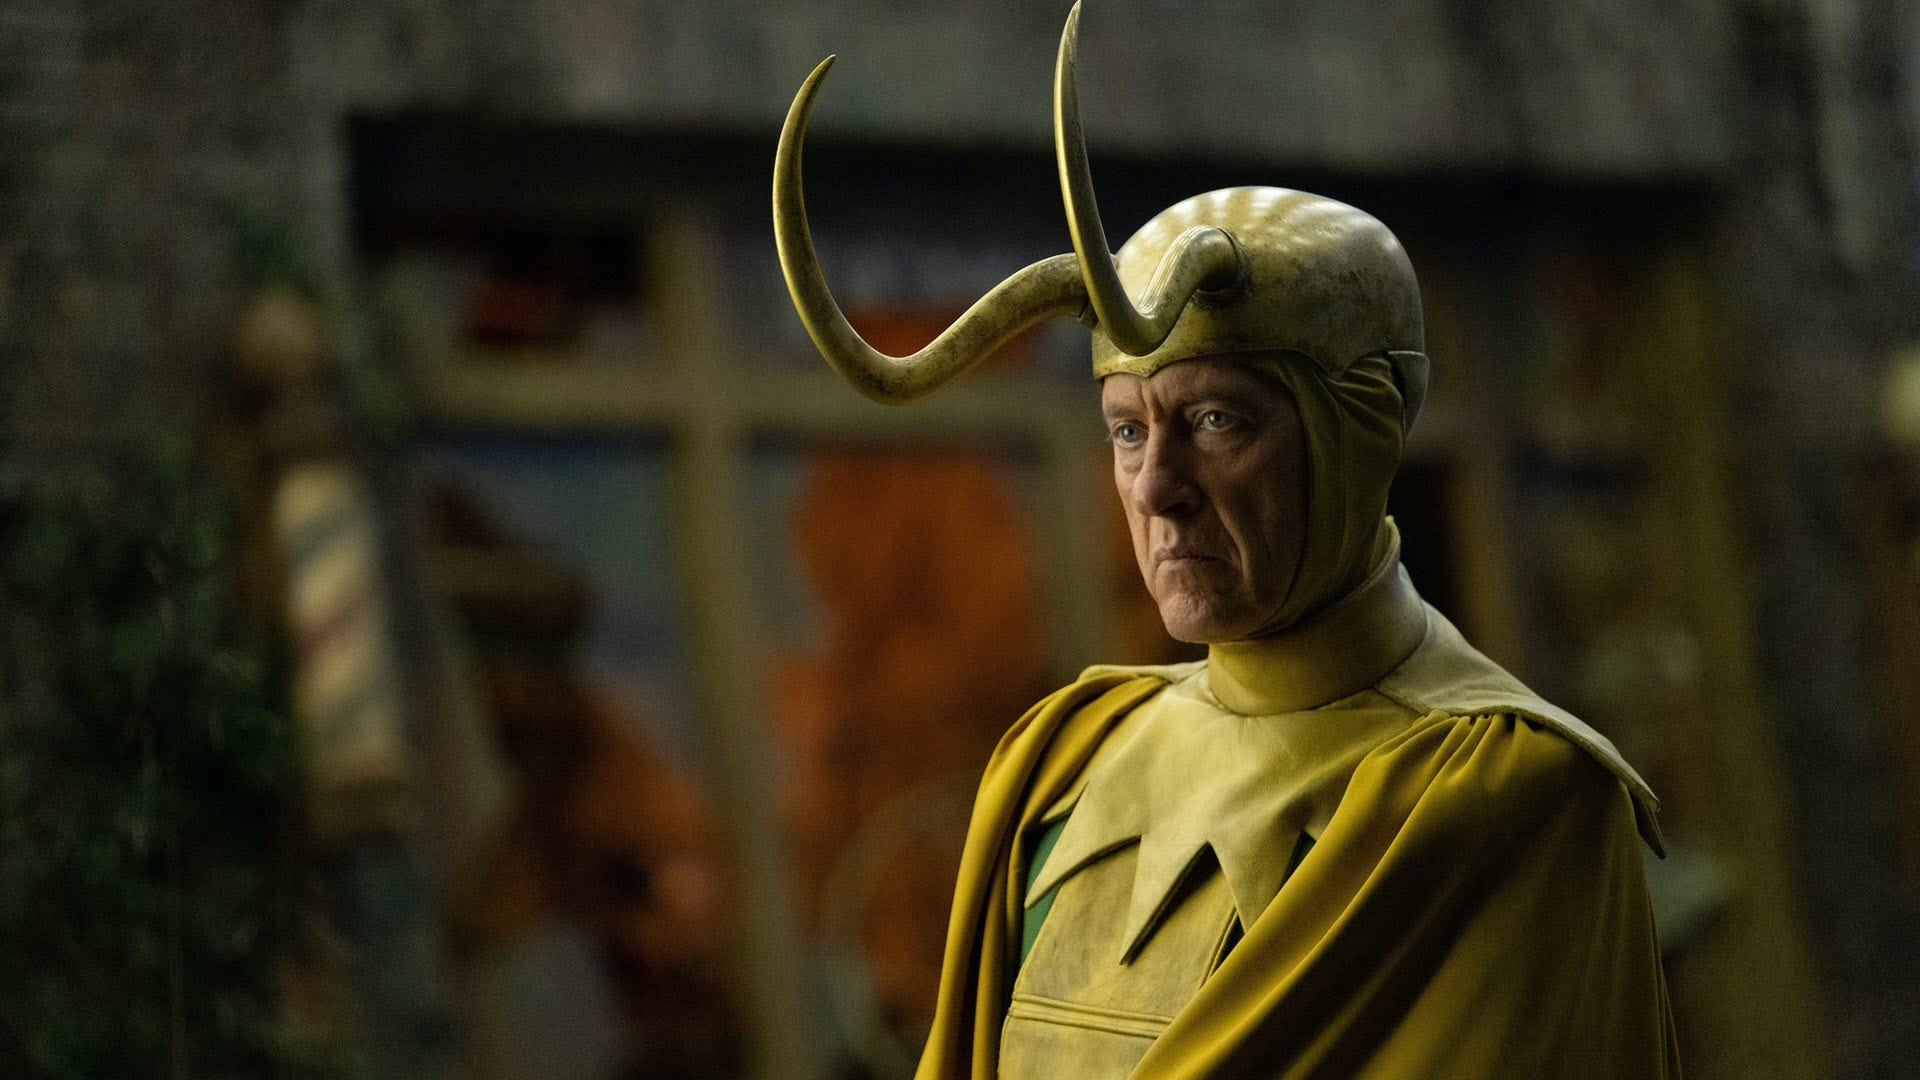 Classic Loki in a yellow and green costume